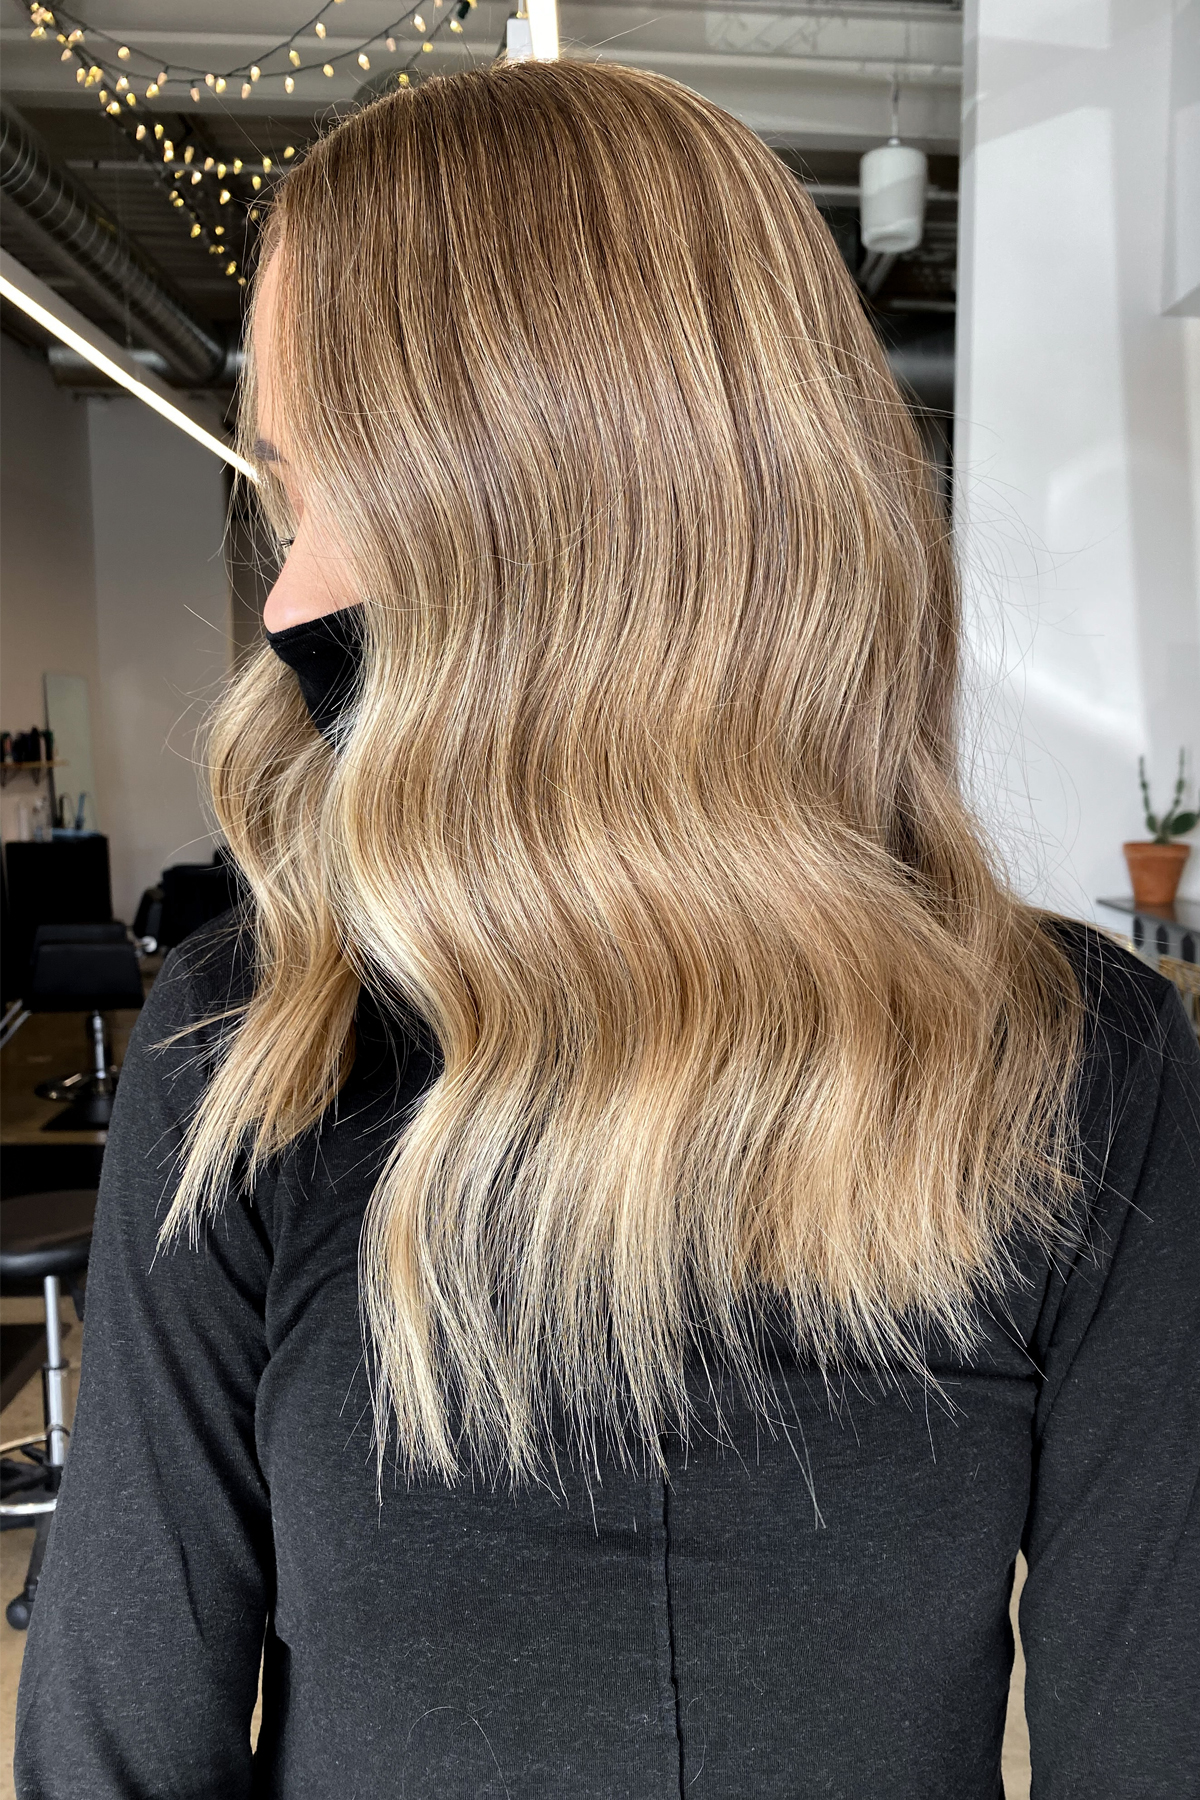 Fashion Jackson Long Bronde Hair Beachy Waves After Picture 1